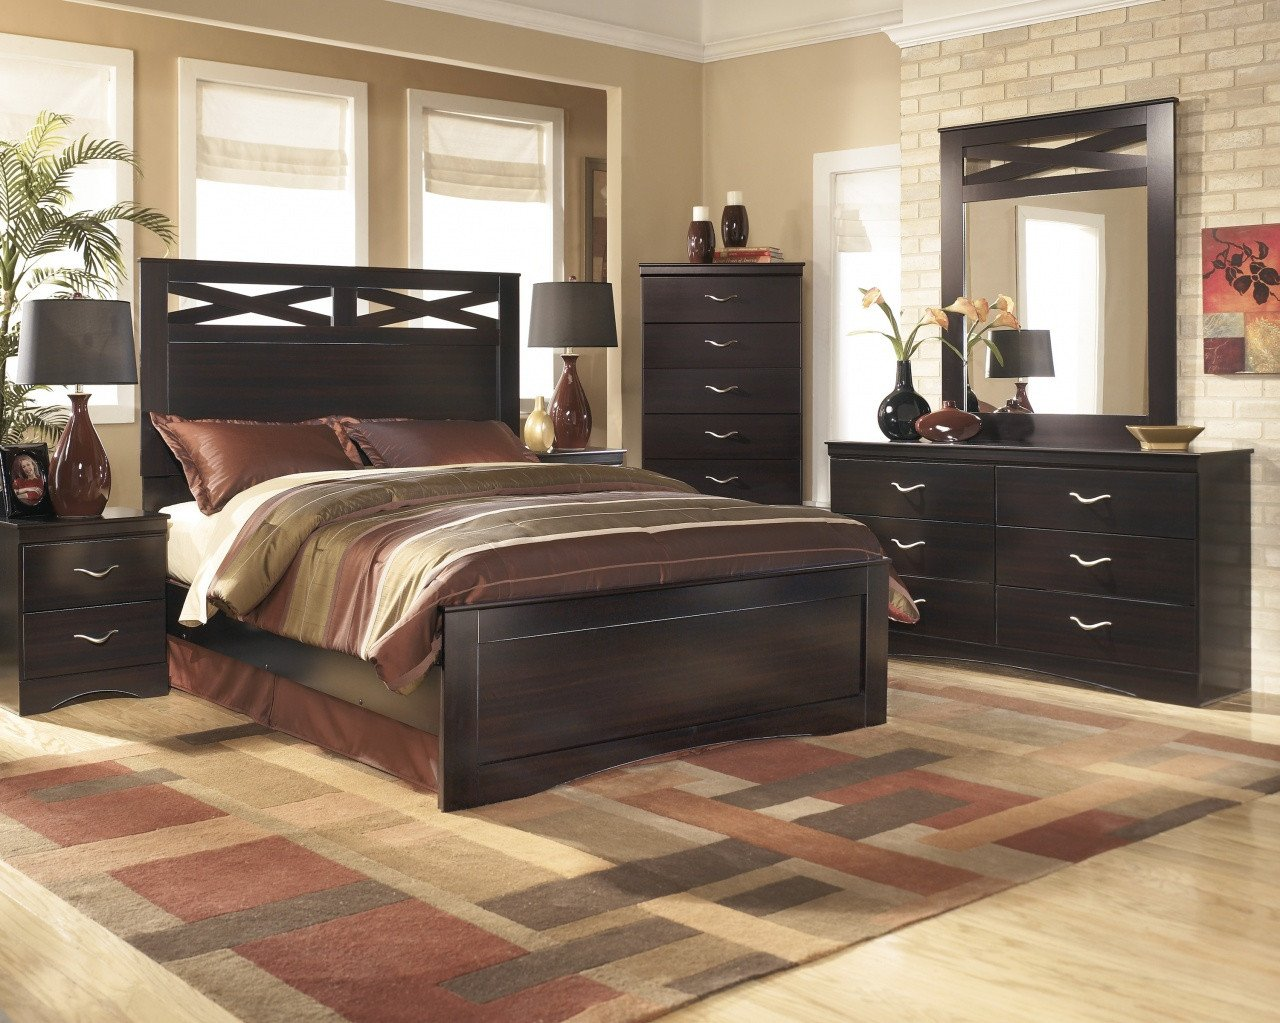 Home Furniture Bedroom Set Luxury ashley Furniture Queen Bedroom Sets – the New Daily Nation